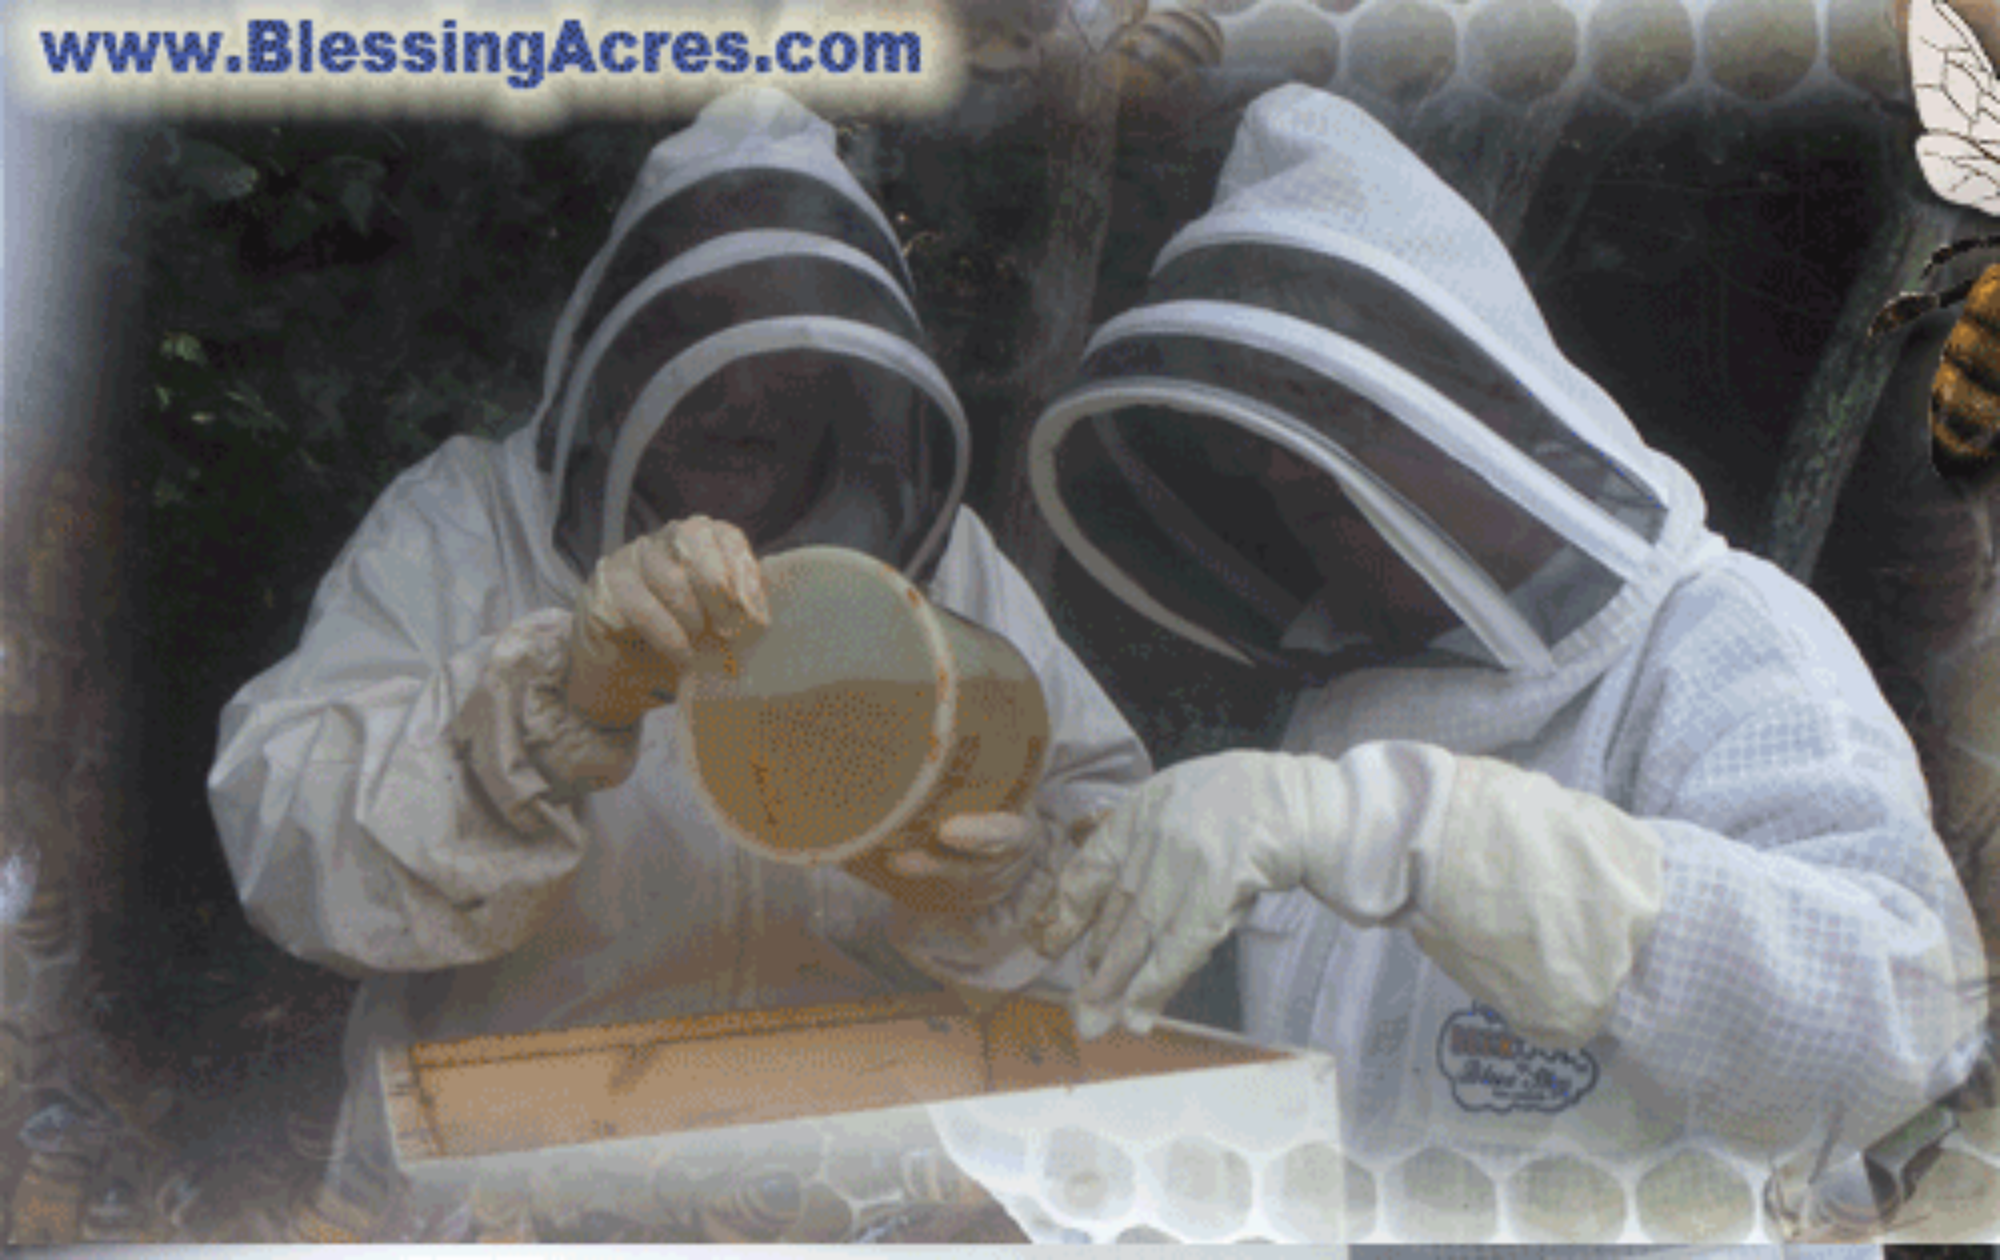 Blessing Acres Apiaries